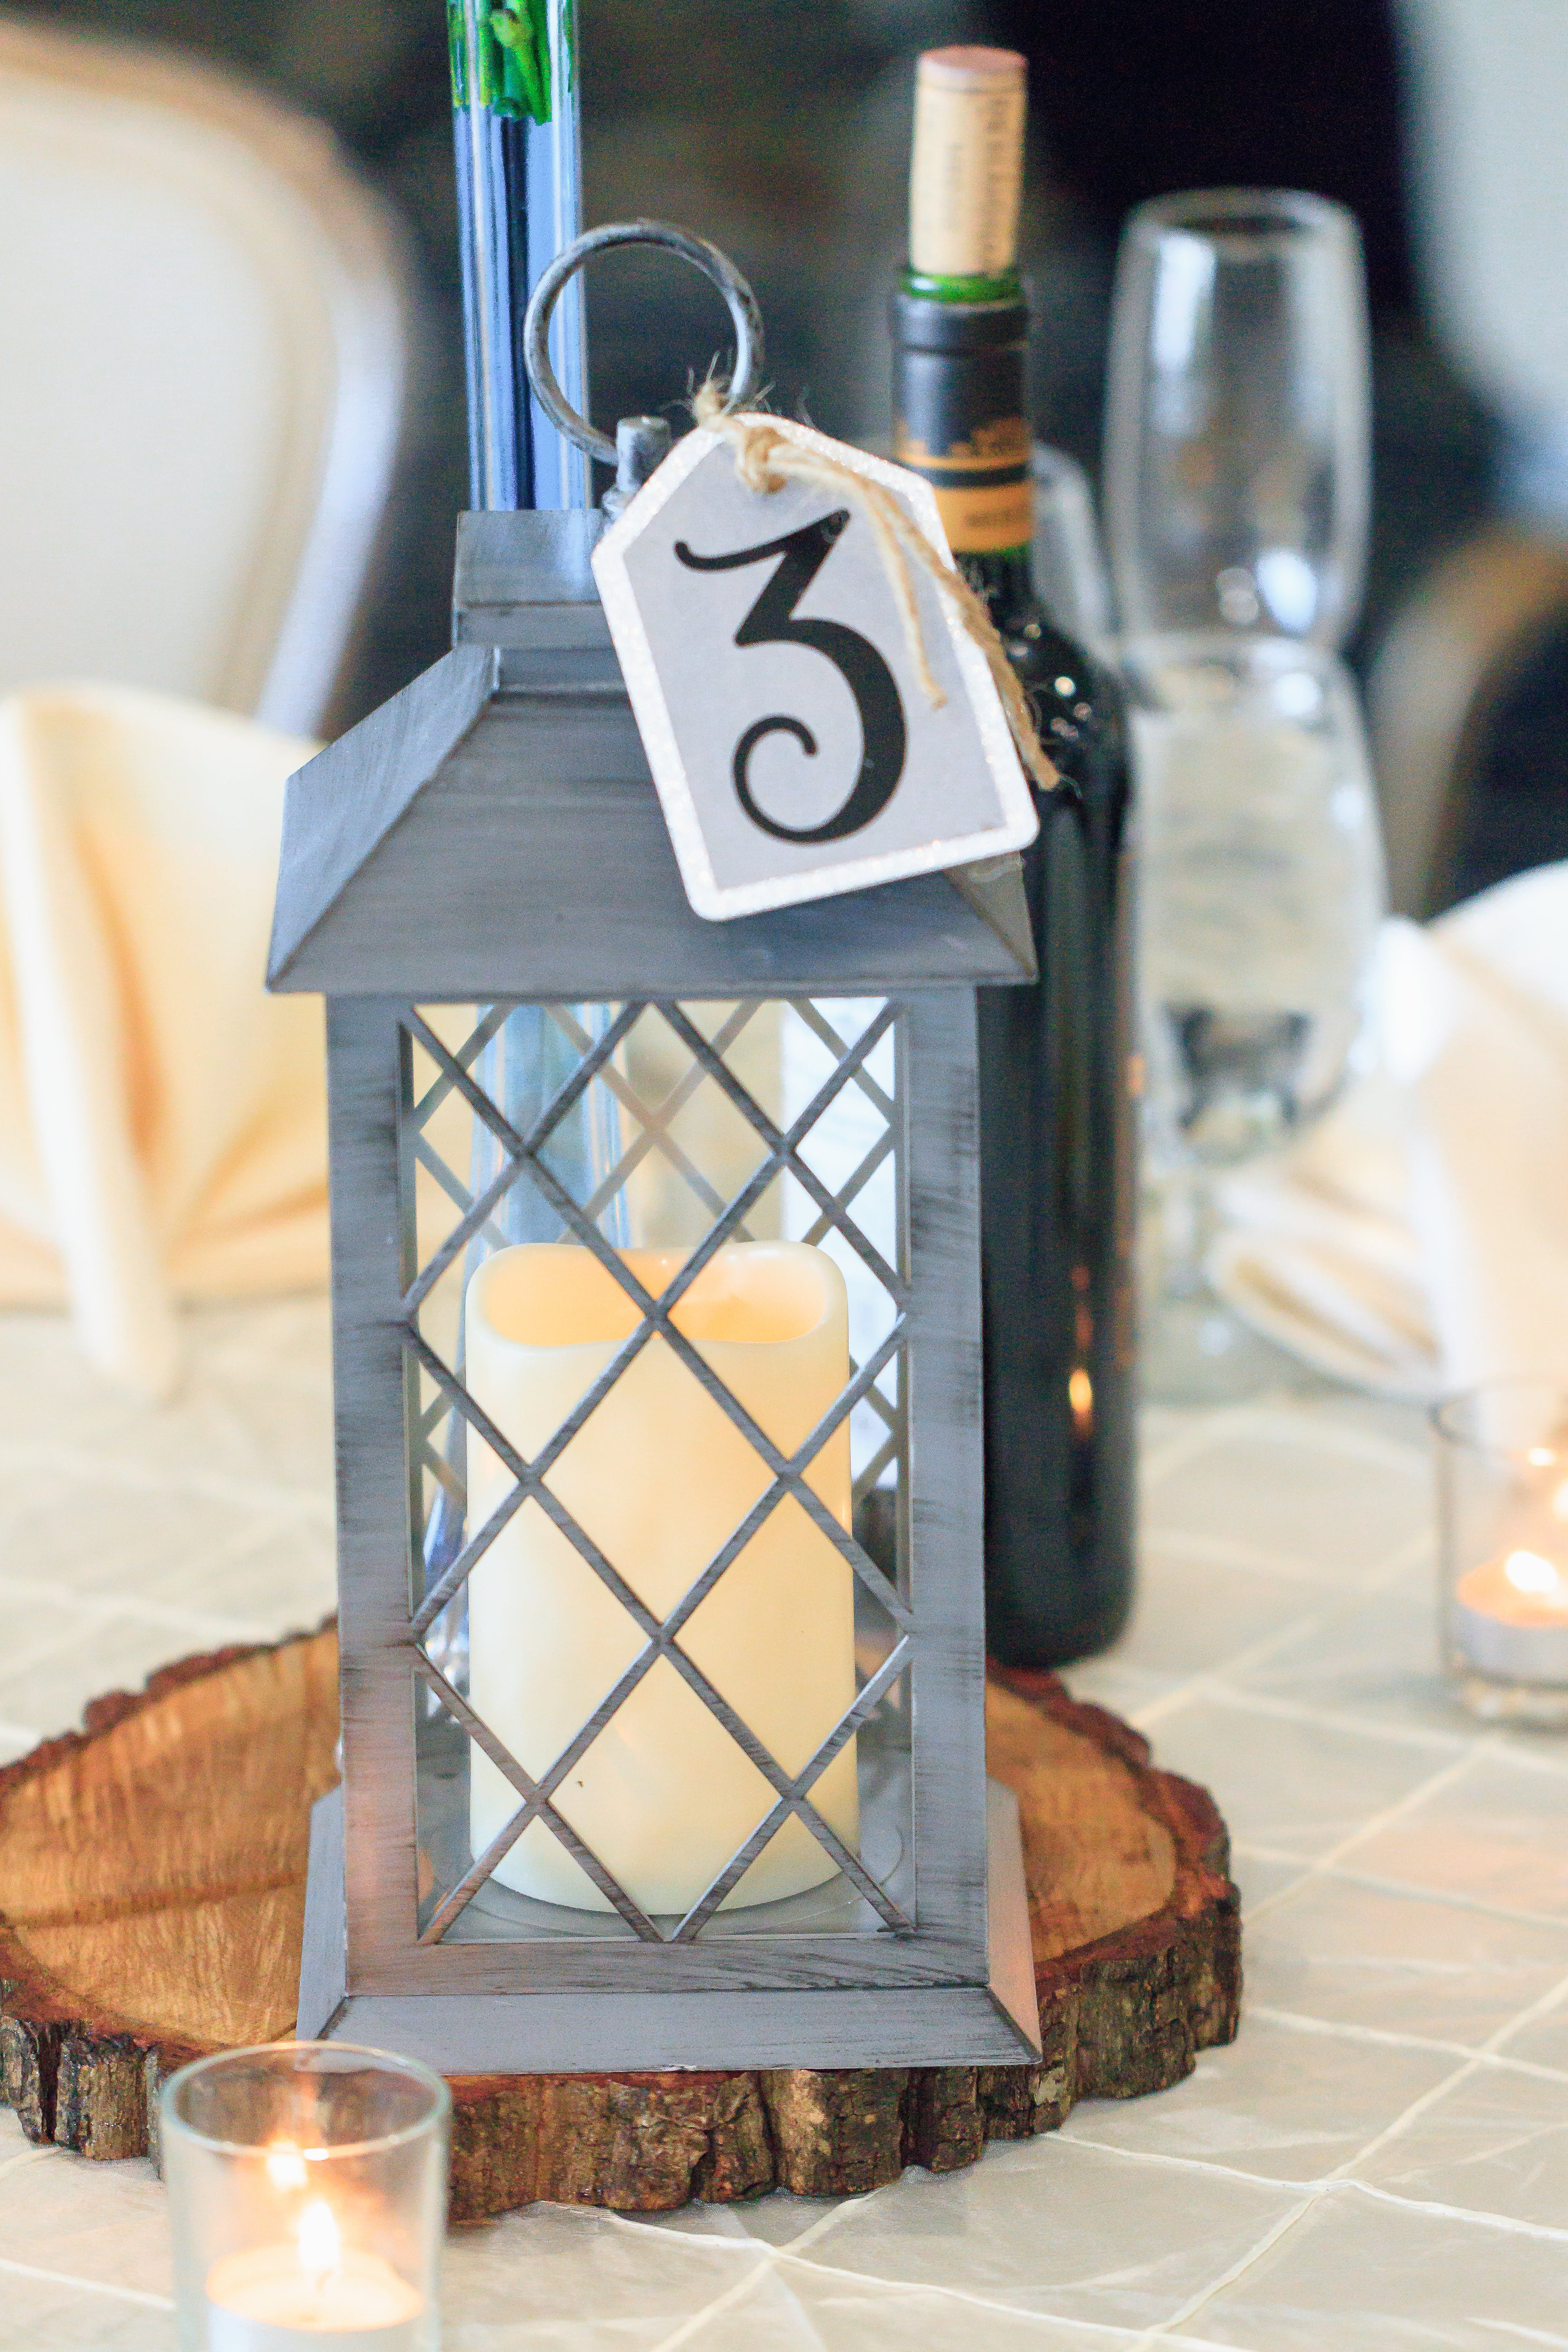 Selective Focus Photography of Candle Lantern on Table